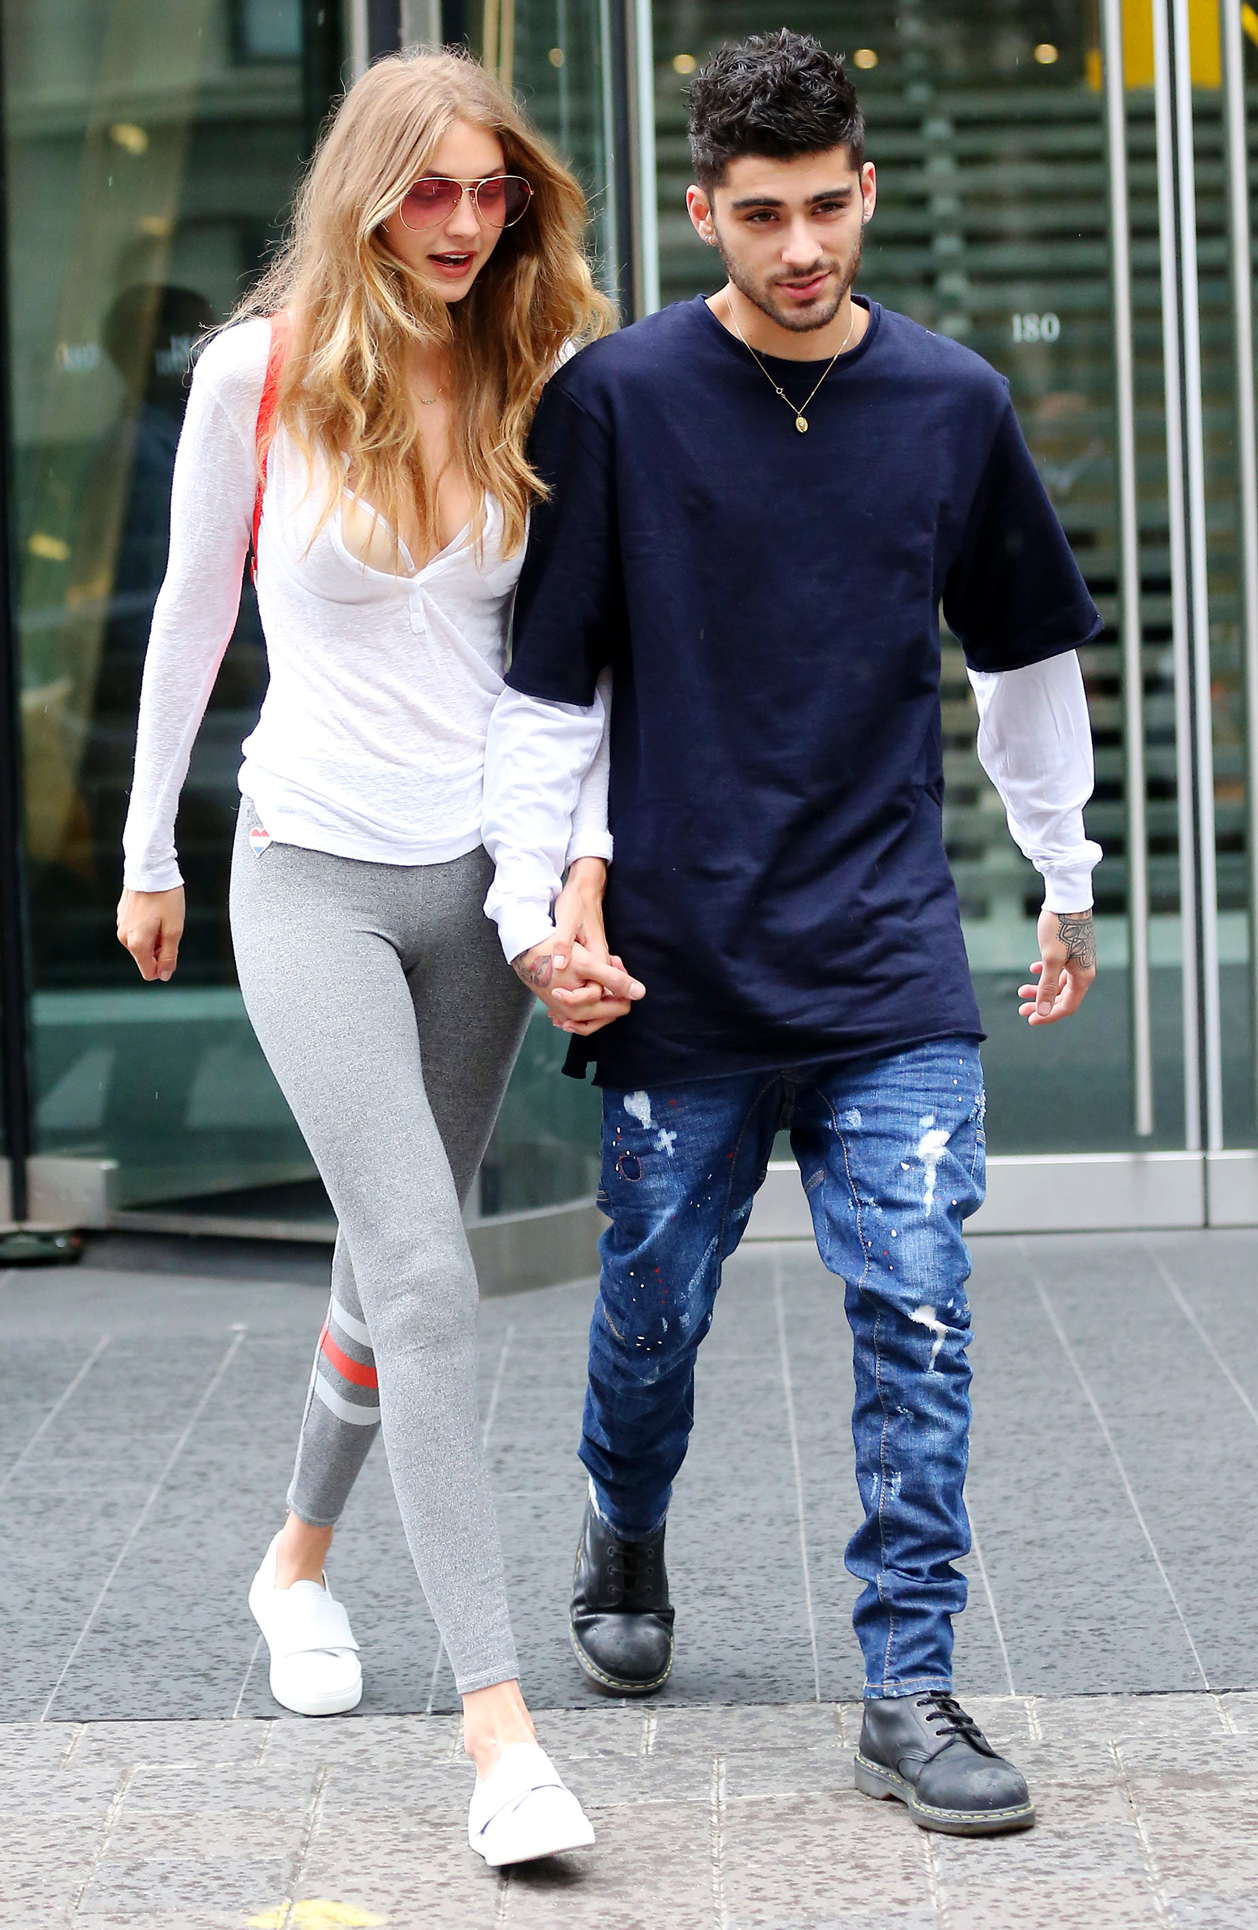 Gigi Hadid and Zayn Malik - Lead